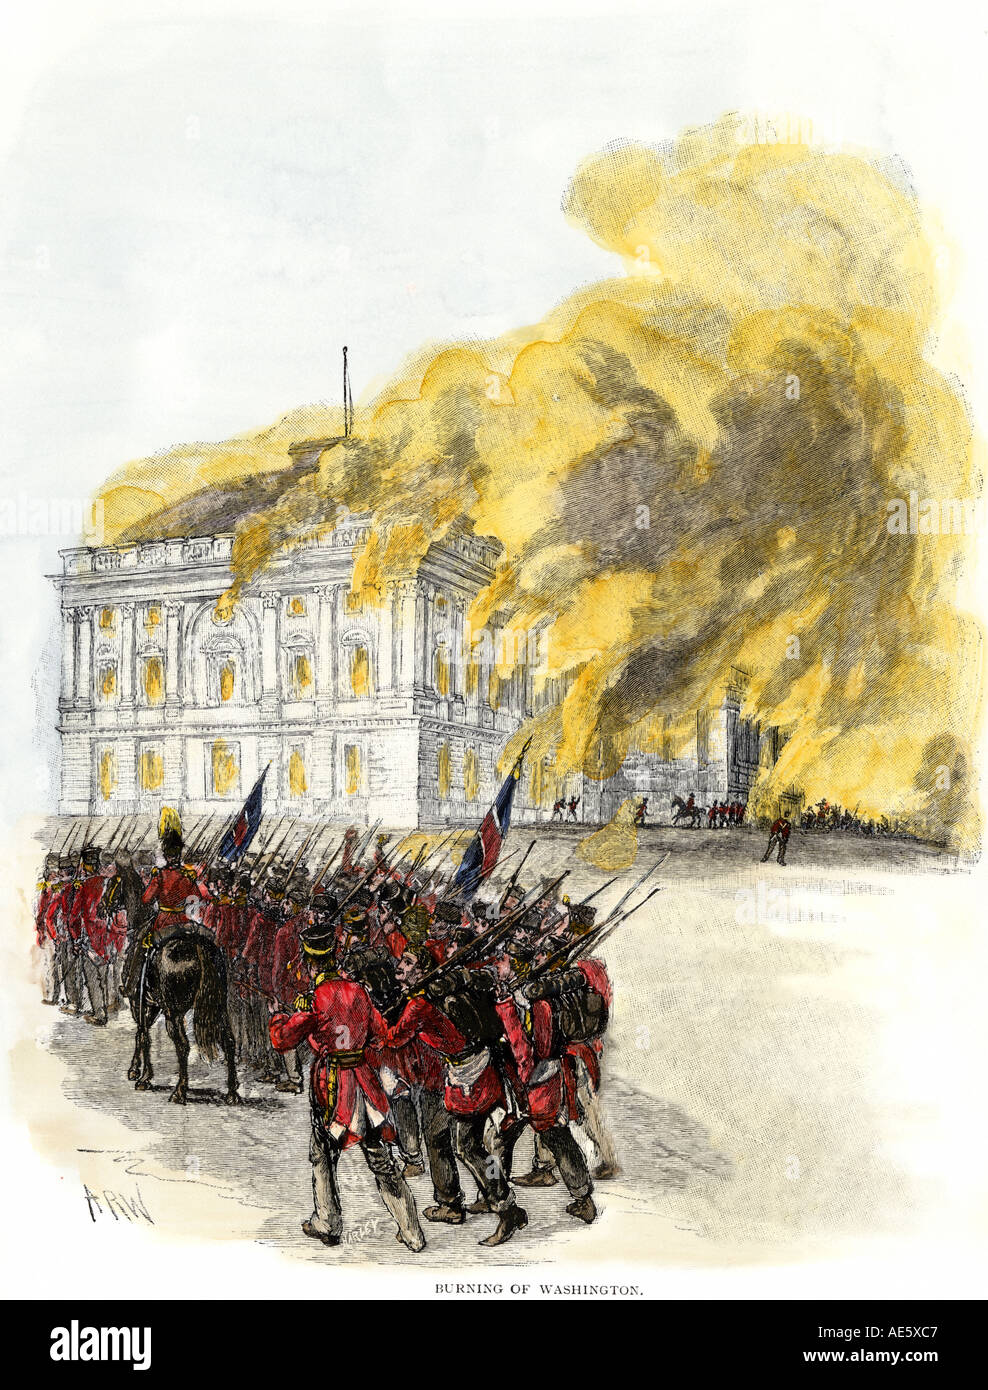 British army burning the White House in 1814 during the War of 1812.  Hand-colored woodcut